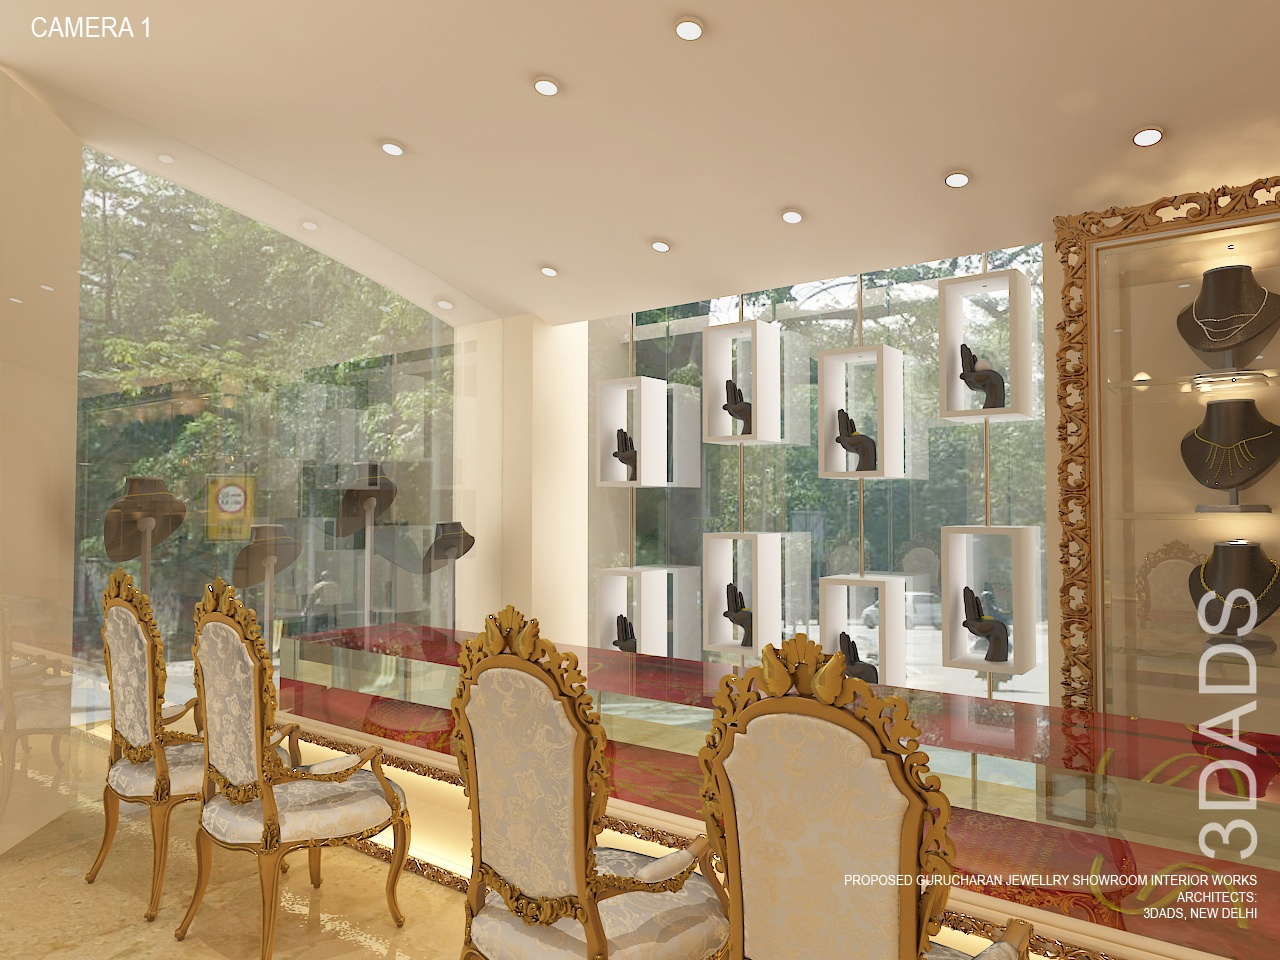 Jewellery Showroom Interior Design